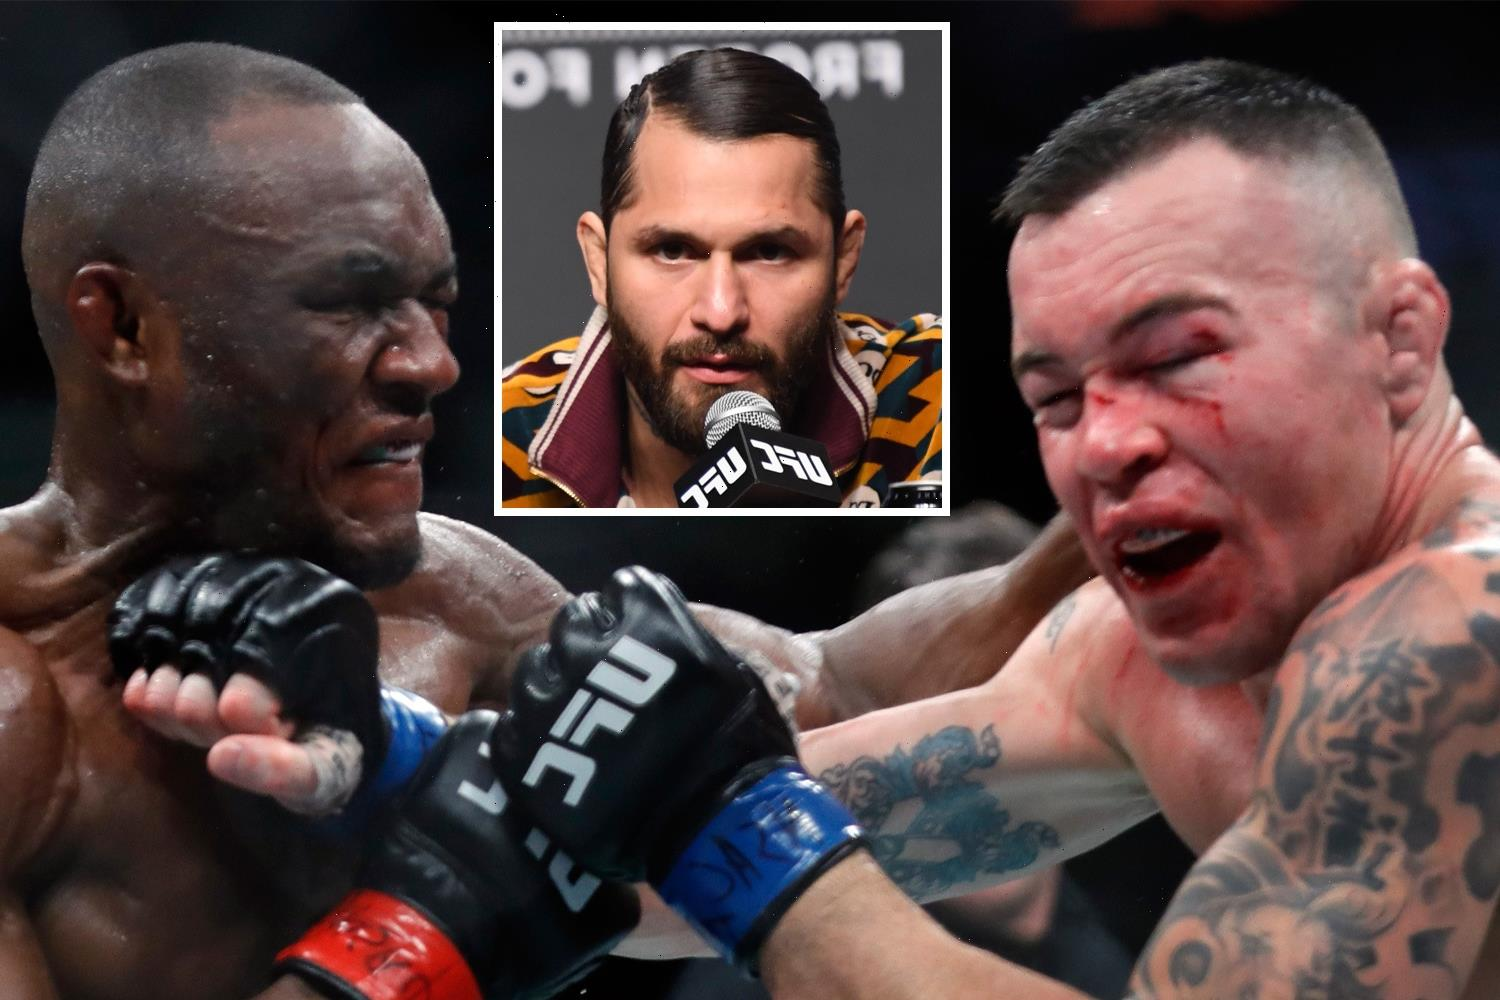 Jorge Masvidal tips Kamaru Usman to 'put a thorough beating' on Colby Covington as he breaks down UFC fight